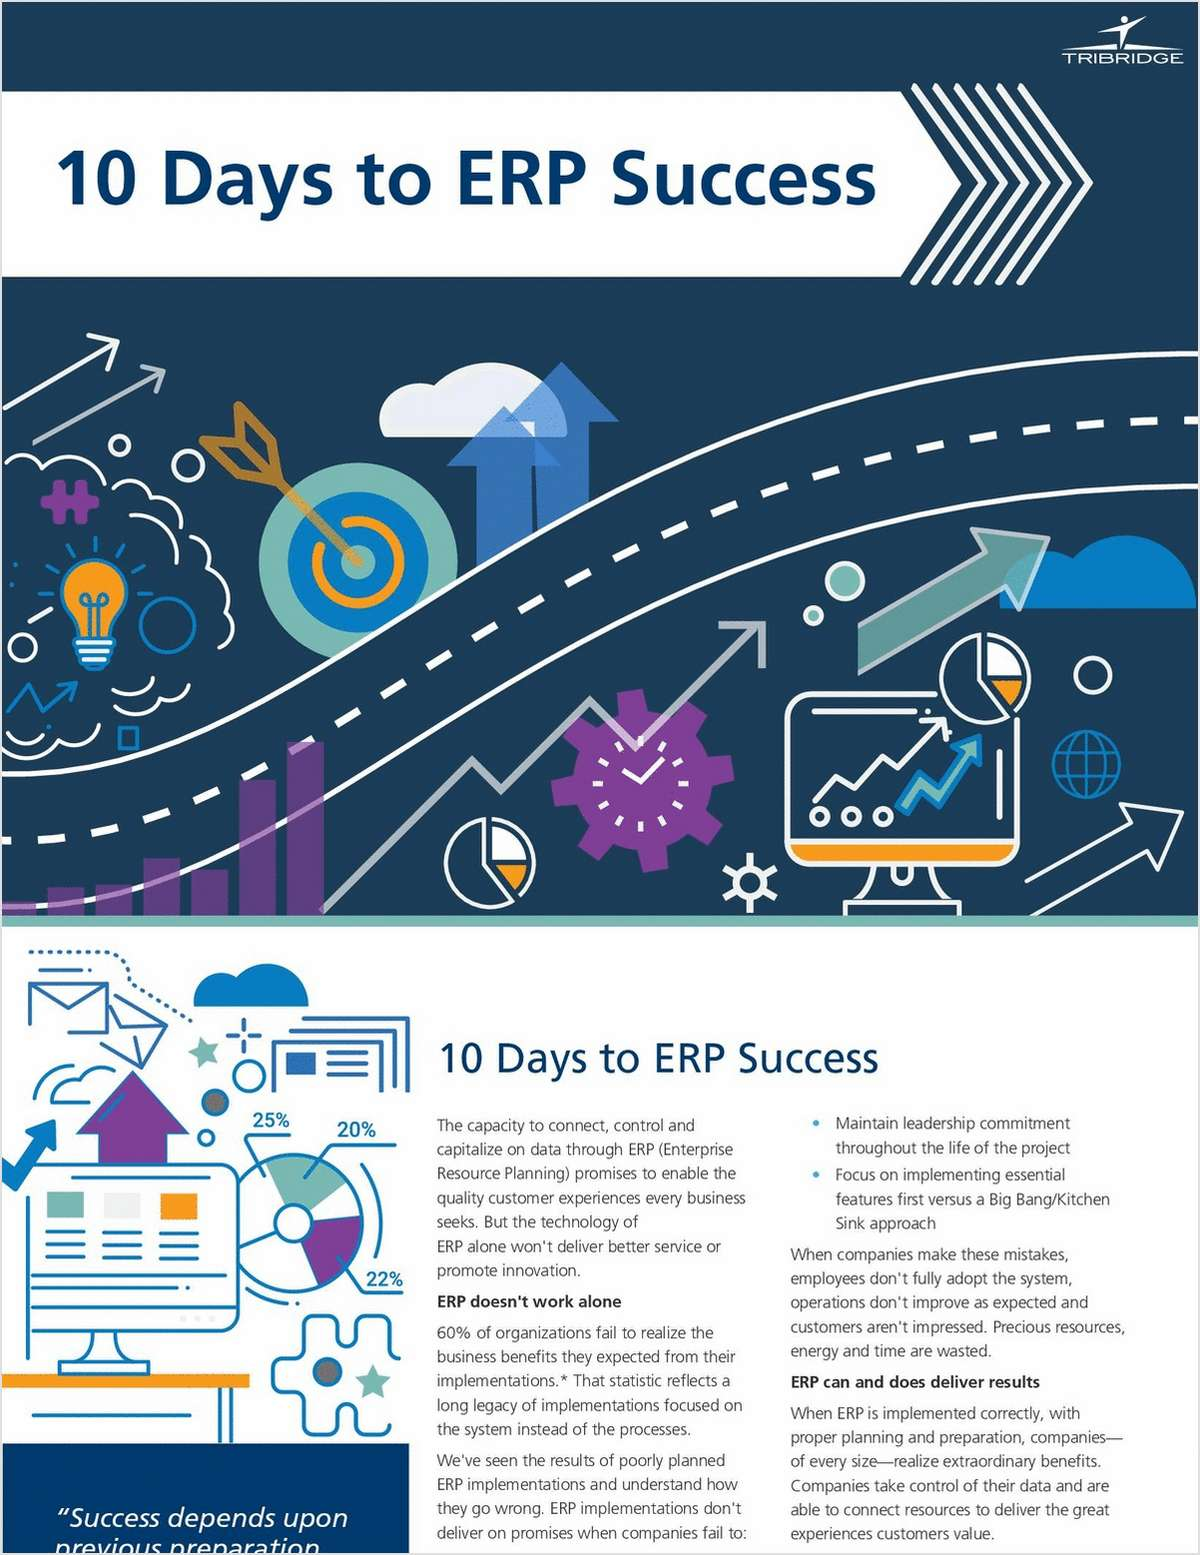 10 Days to ERP Success